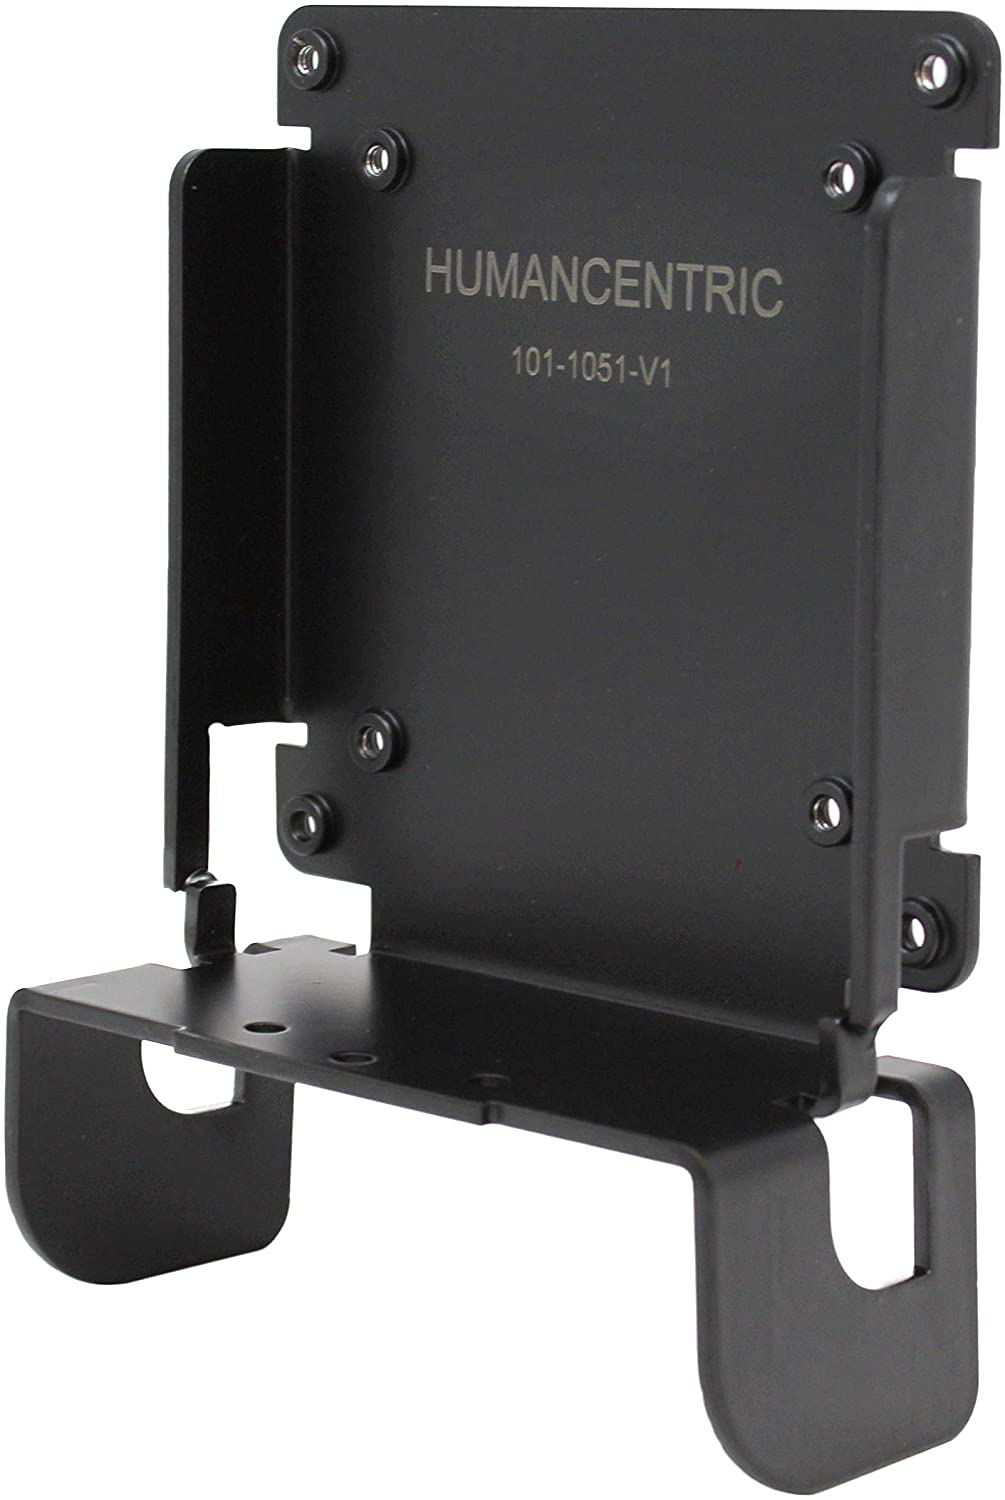 HumanCentric VESA Mount Adapter for HP 27b, 27x, and N270c Monitor